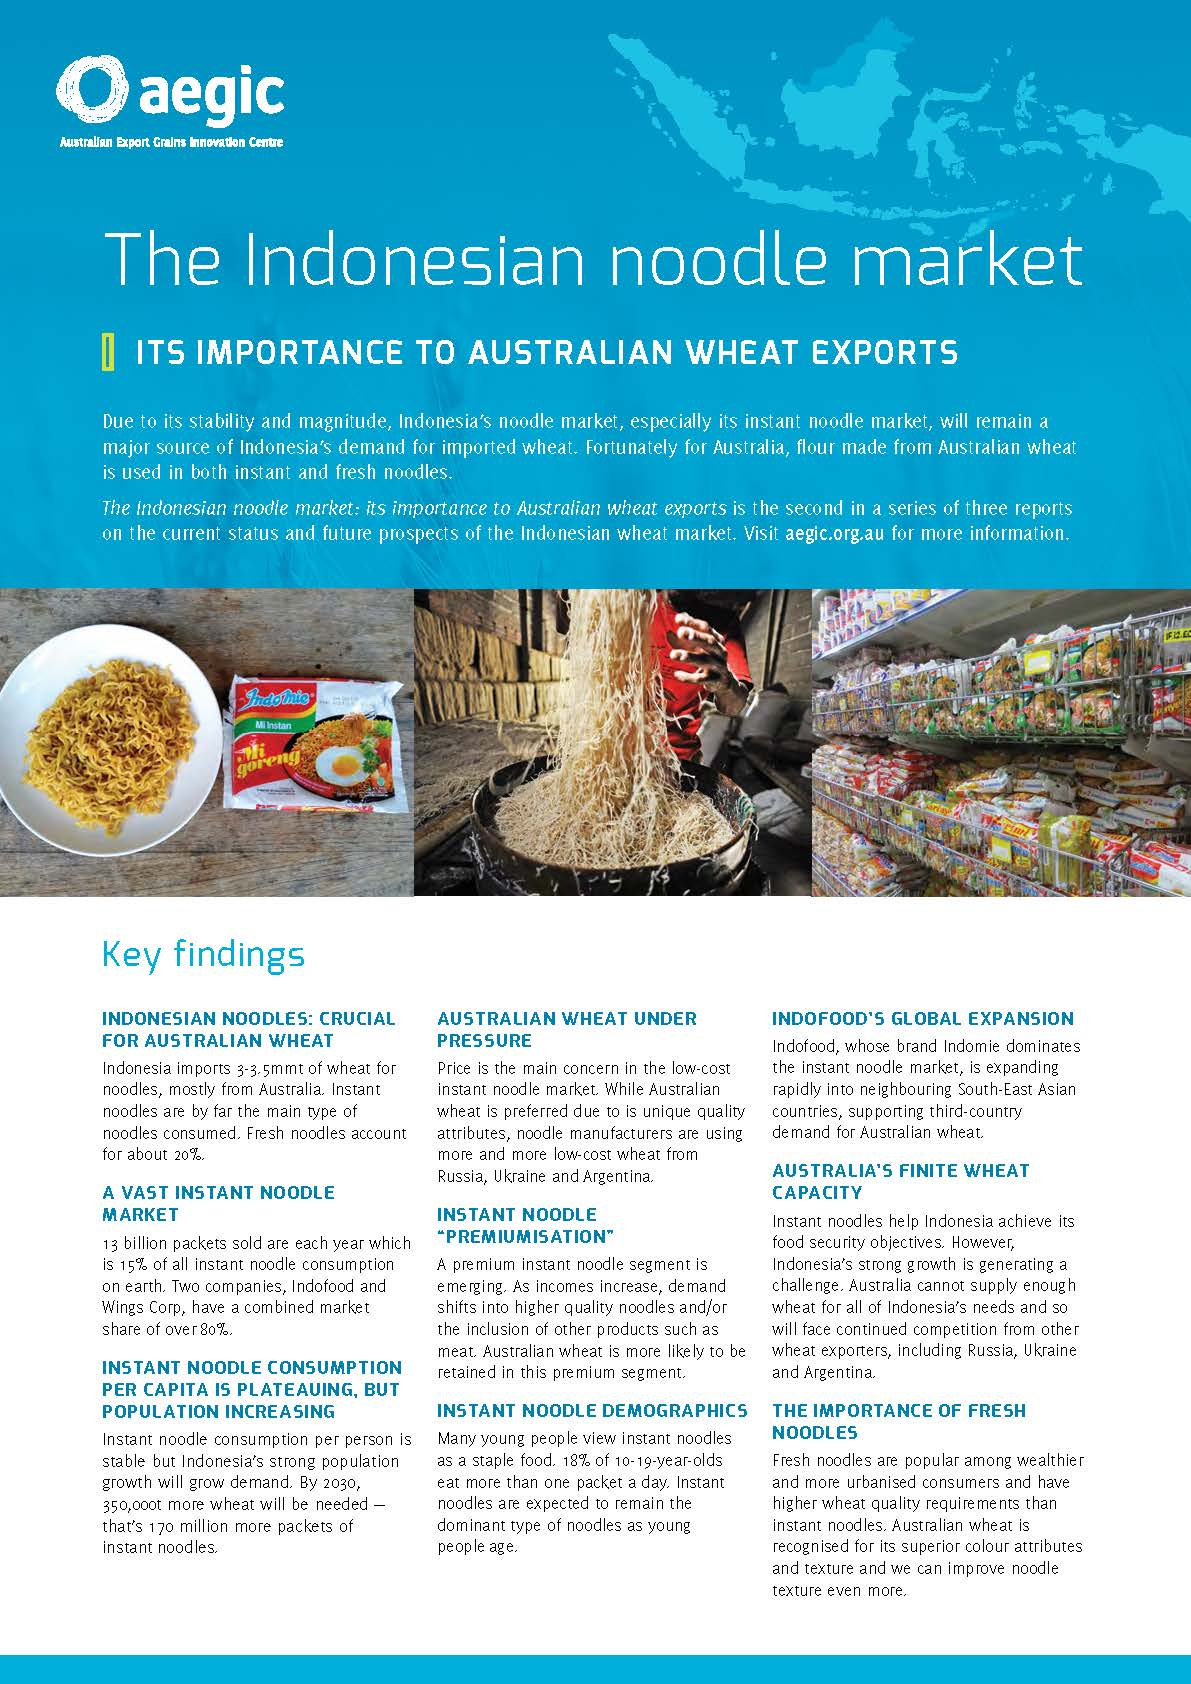 FACT-SHEET-AEGIC-The-Indonesian-noodle-market_Page_1.jpg